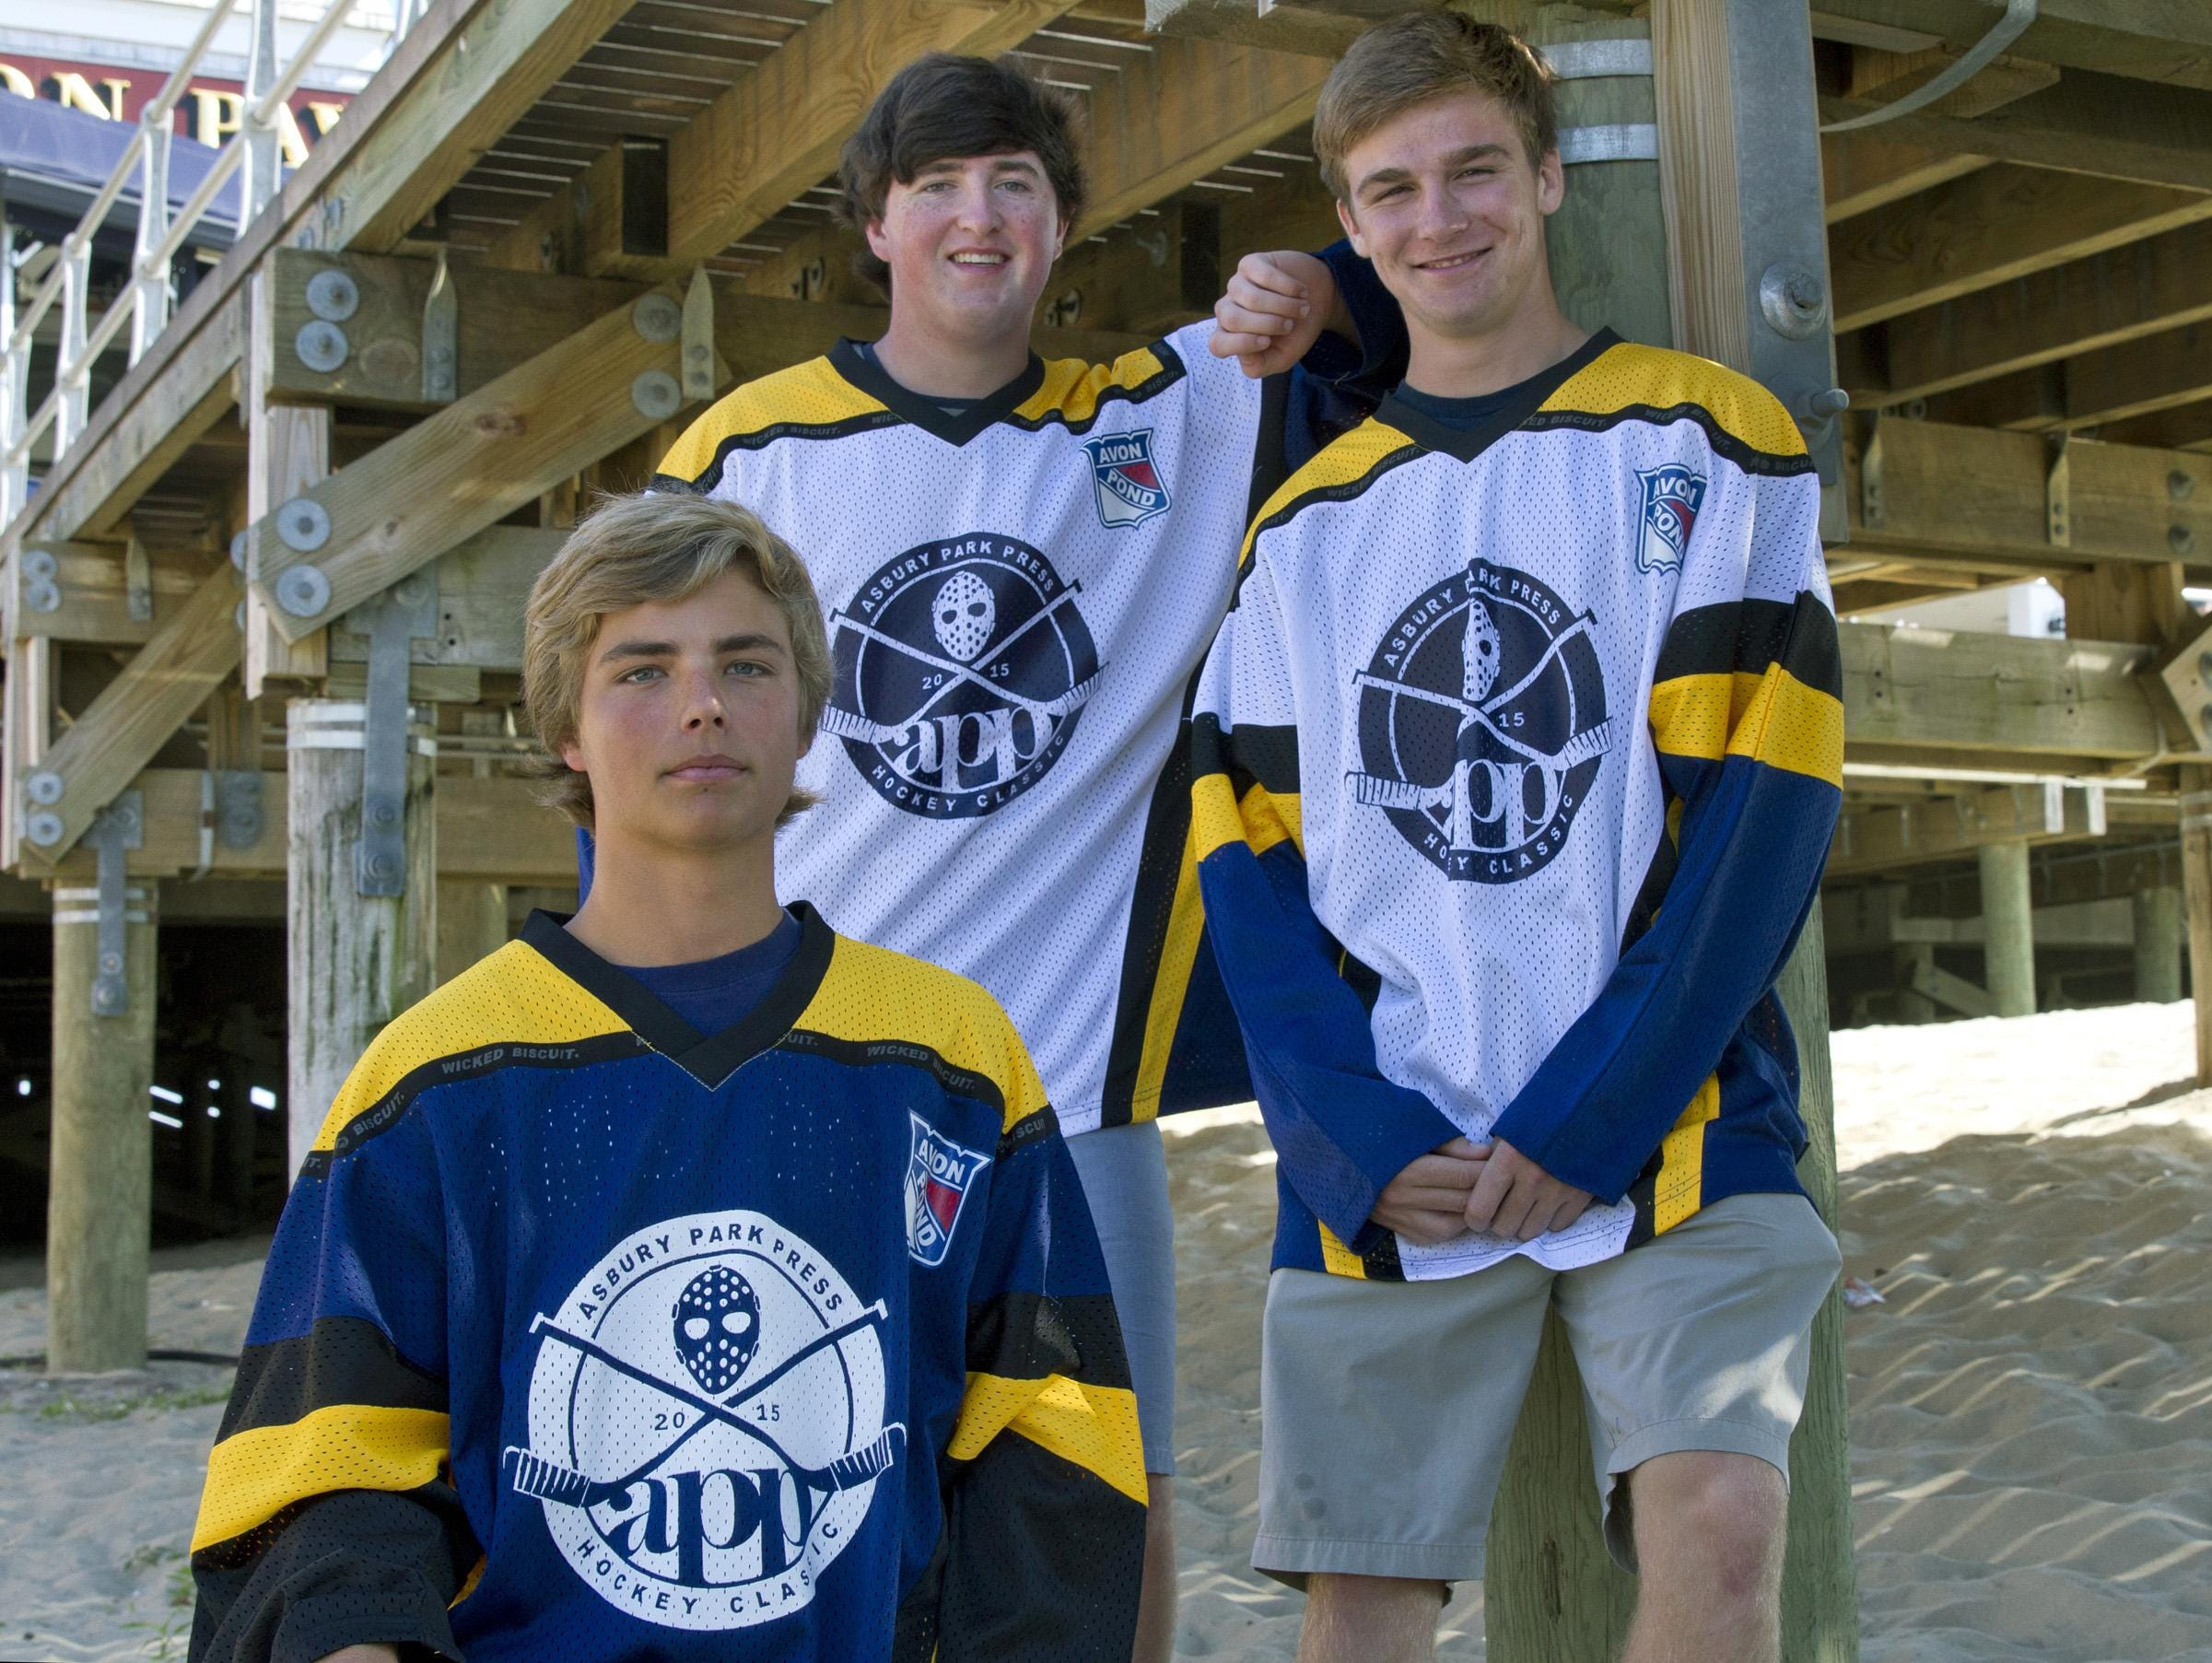 All Star Hockey players Matt Swan of Wall Township (front), Ryan O'Malley of St. Rose (back left), and Owen Herrington of Point Boro (back right) display jerseys for APP All-Star Game.